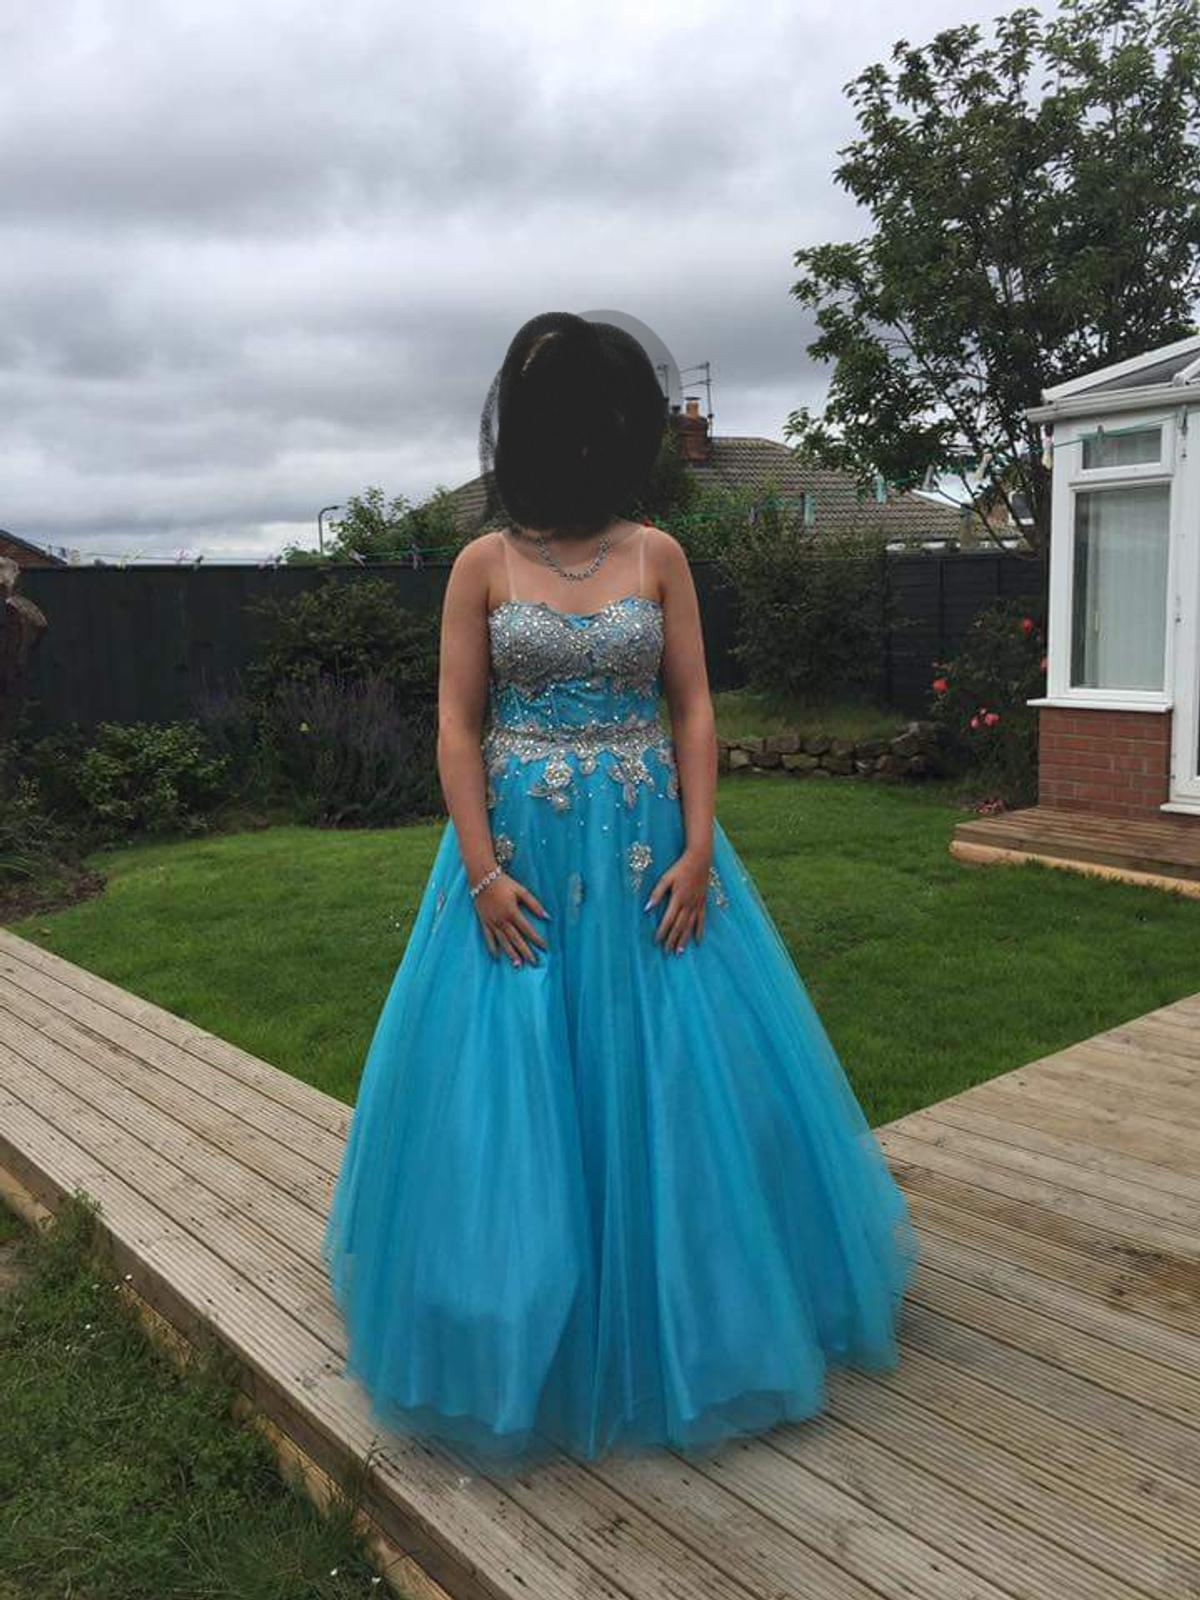 size 12 corset back prom dress only worn a few hours